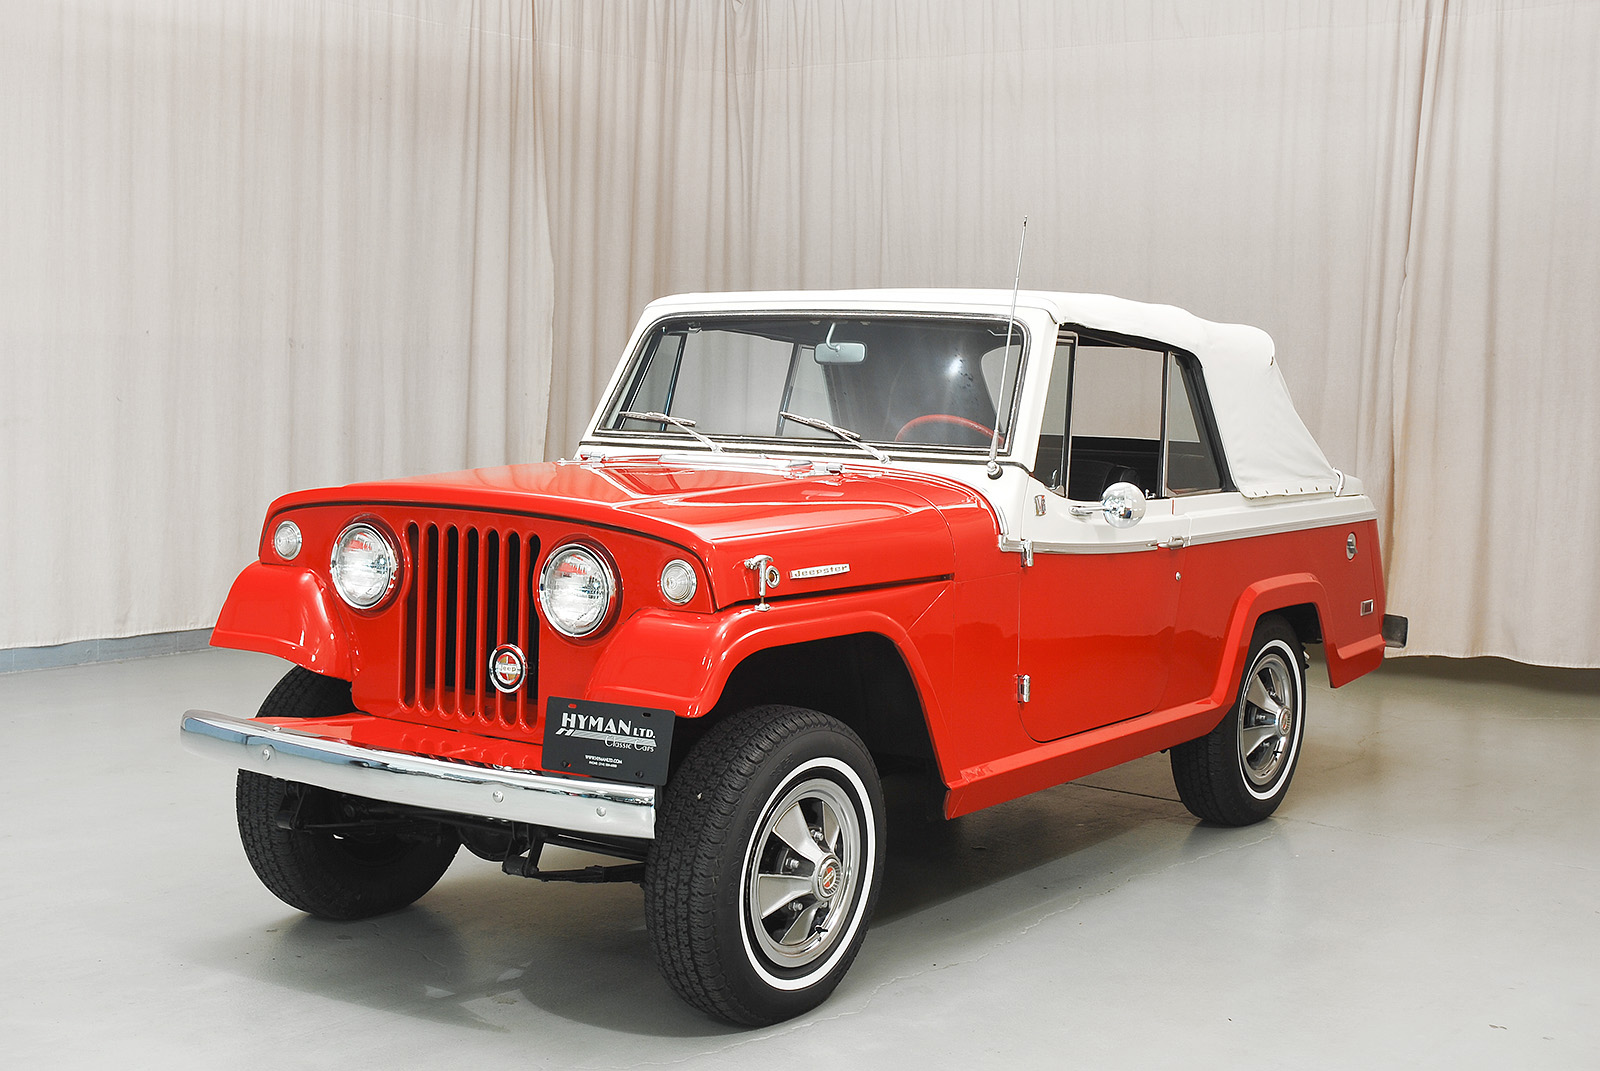 1968 jeep jeepster convertible hyman ltd classic cars. Black Bedroom Furniture Sets. Home Design Ideas